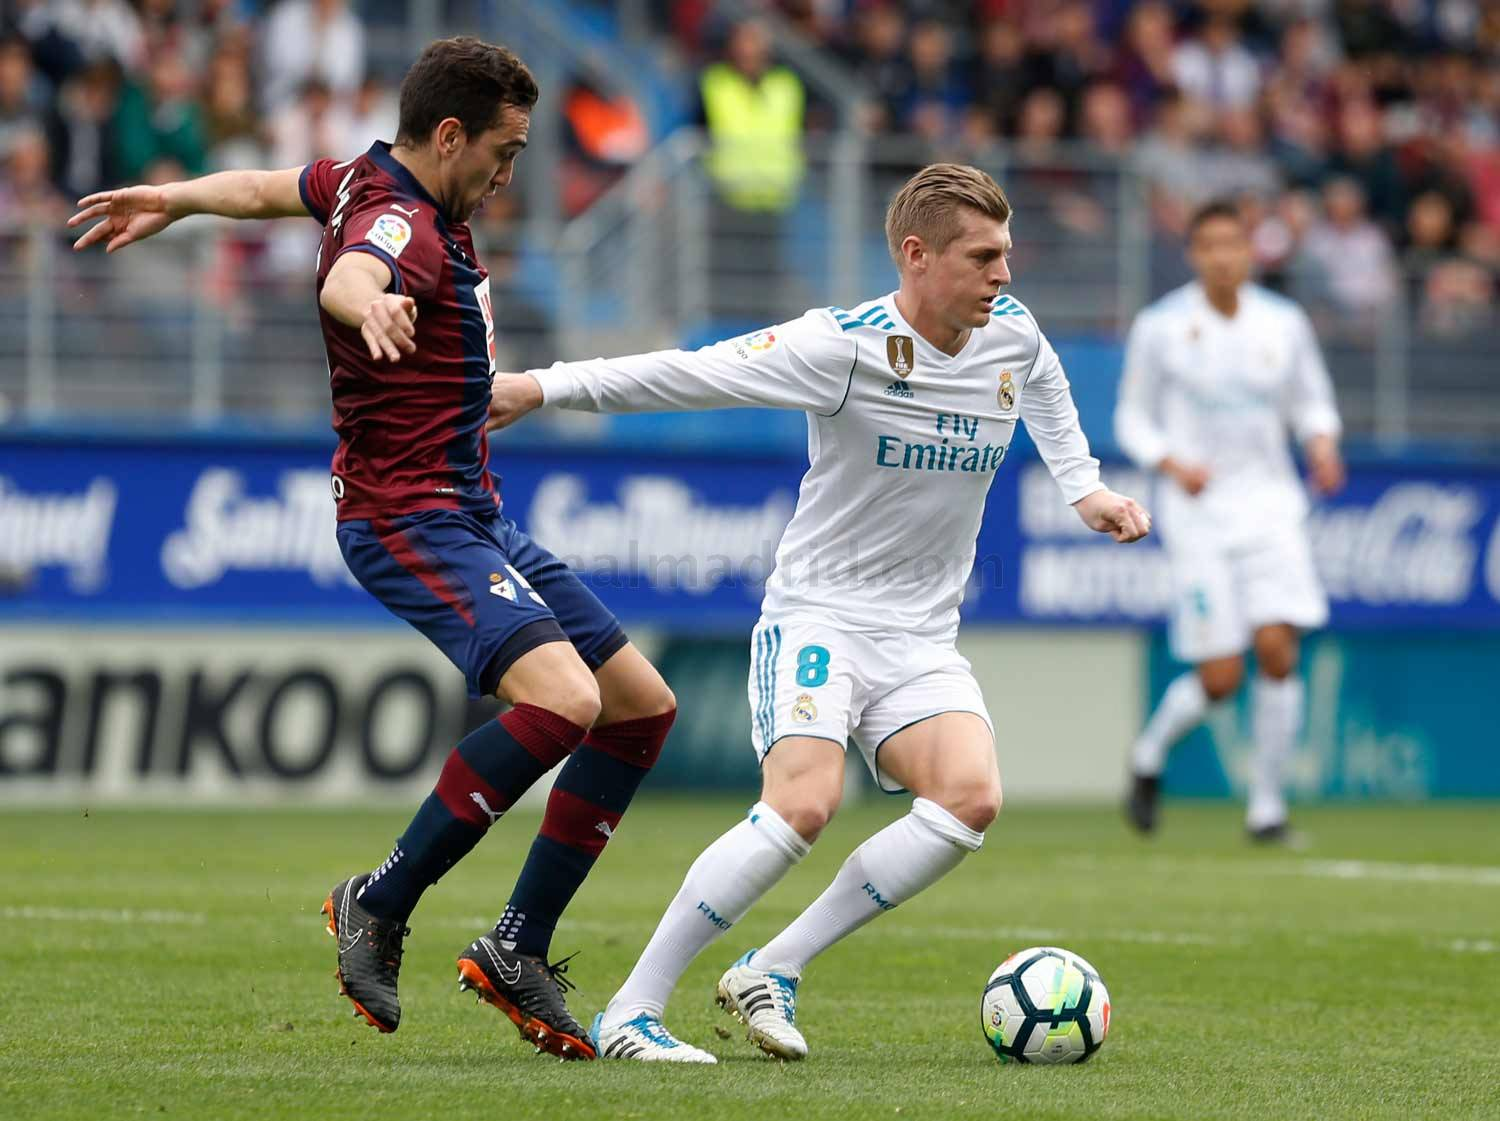 Podcast Eibar 1-2 Real Madrid